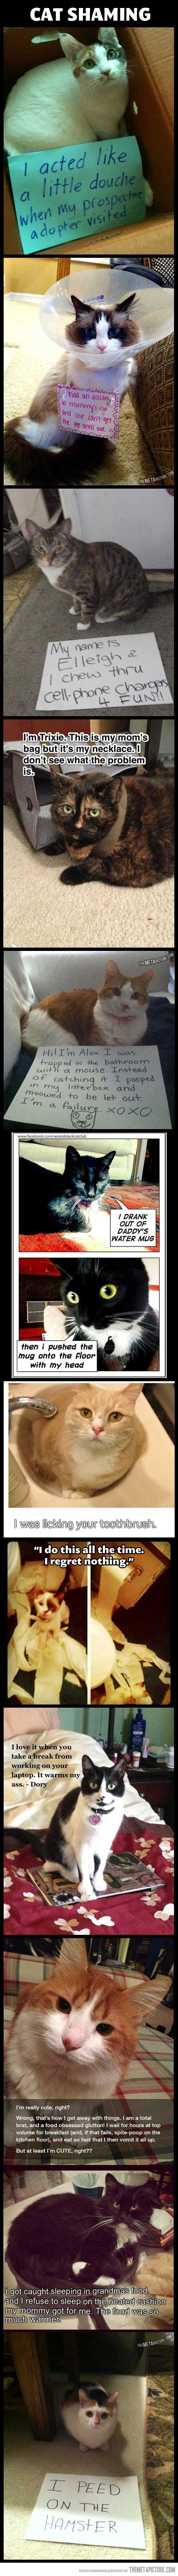 Cat shaming. Equally if not more entertaining than dog shaming, because cats are not…